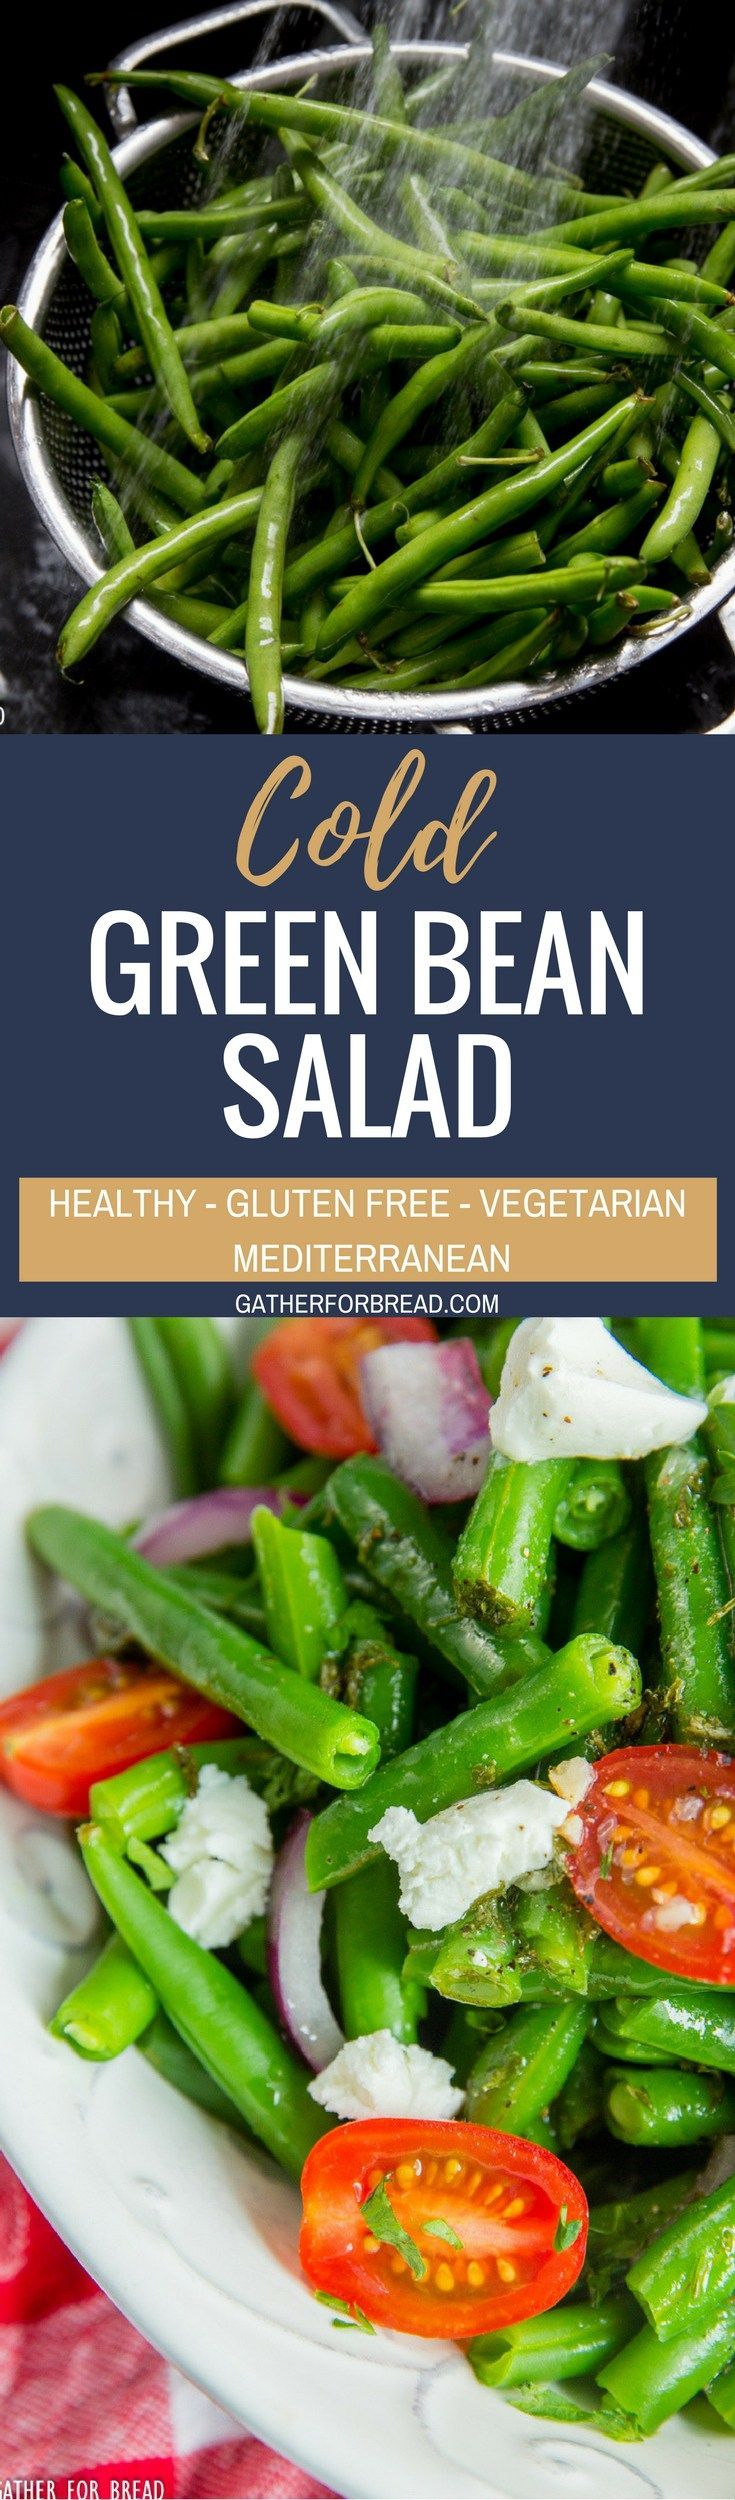 Cold Green Bean Salad - Best Marinated string bean salad recipe - made with a homemade vinaigrette, perfect healthy side dish for summer picnics, potlucks, grilling and more.